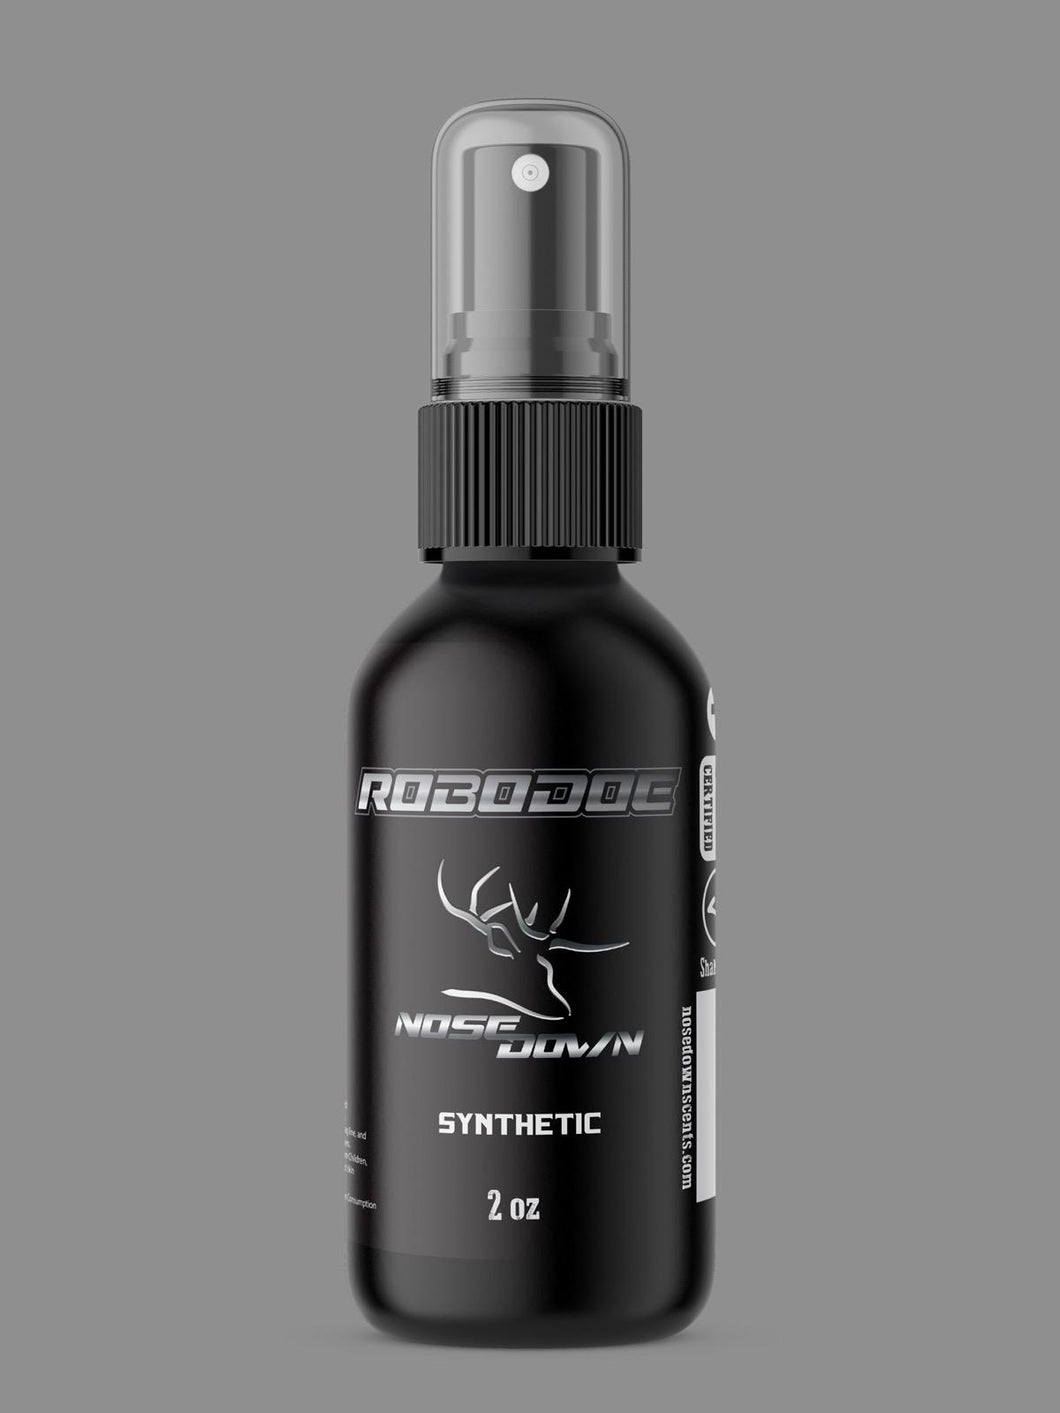 RoboDoe Synthetic Scent